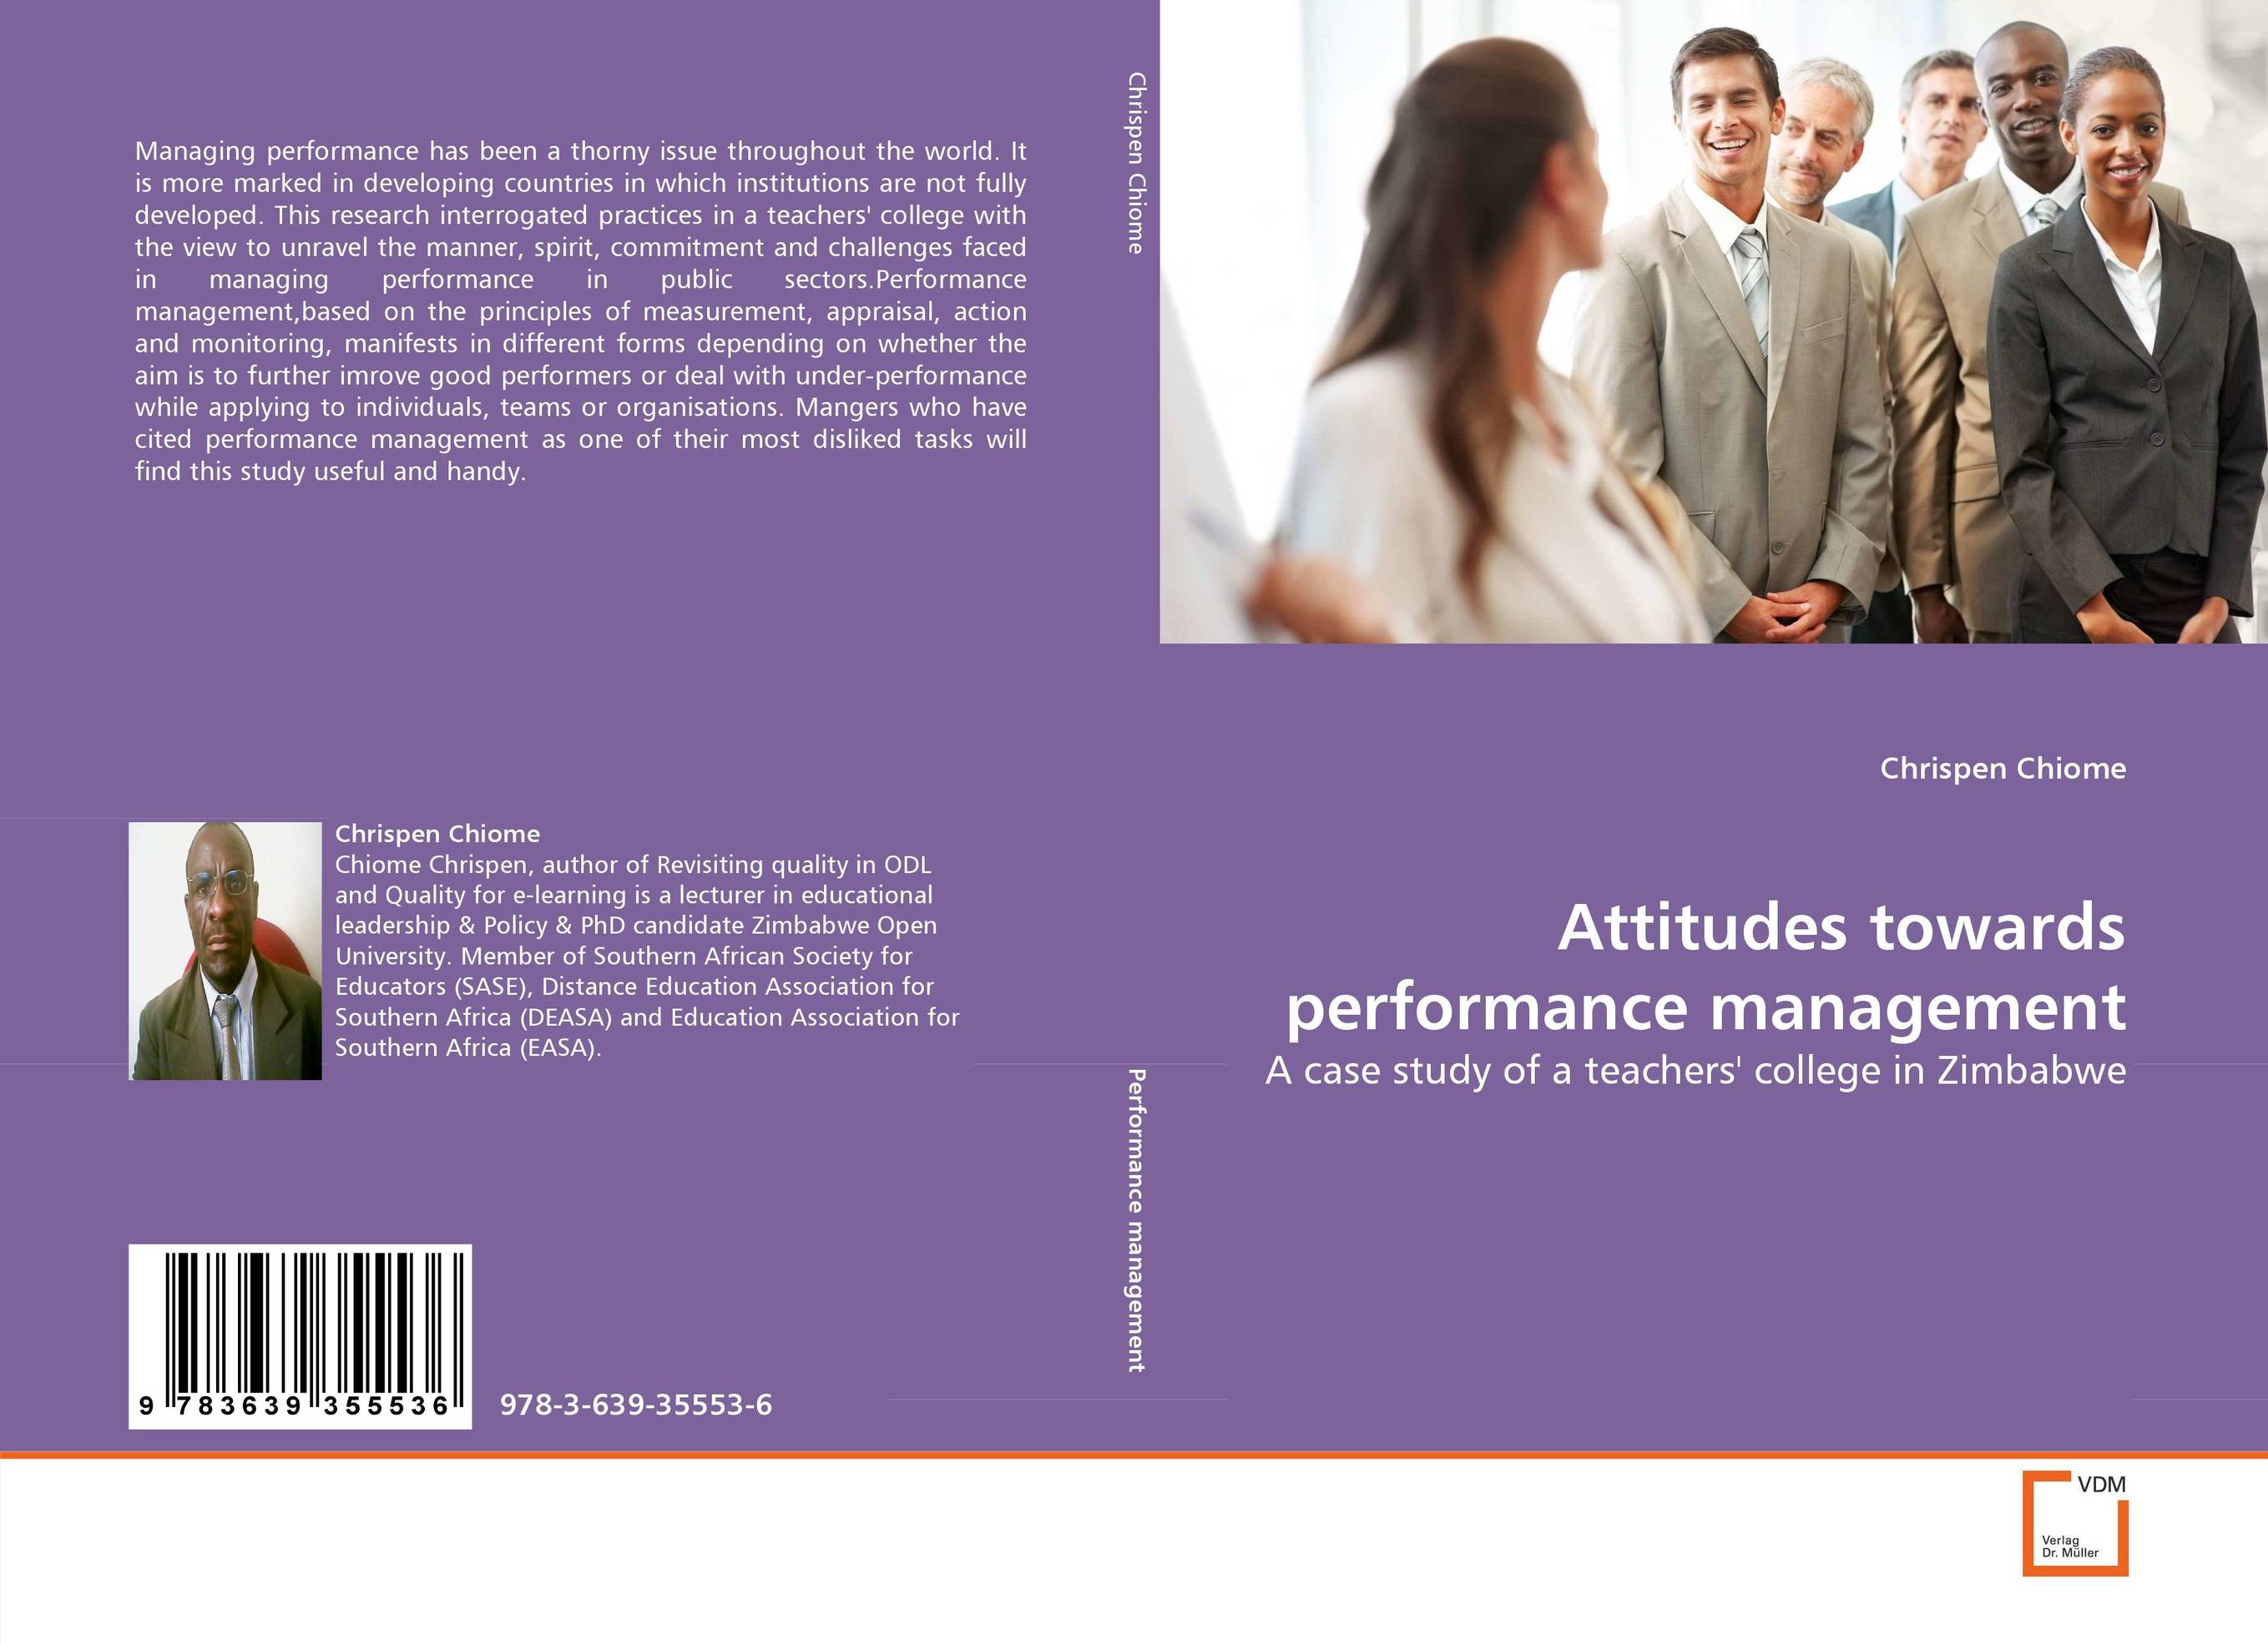 Attitudes towards performance management david axson a j best practices in planning and performance management radically rethinking management for a volatile world